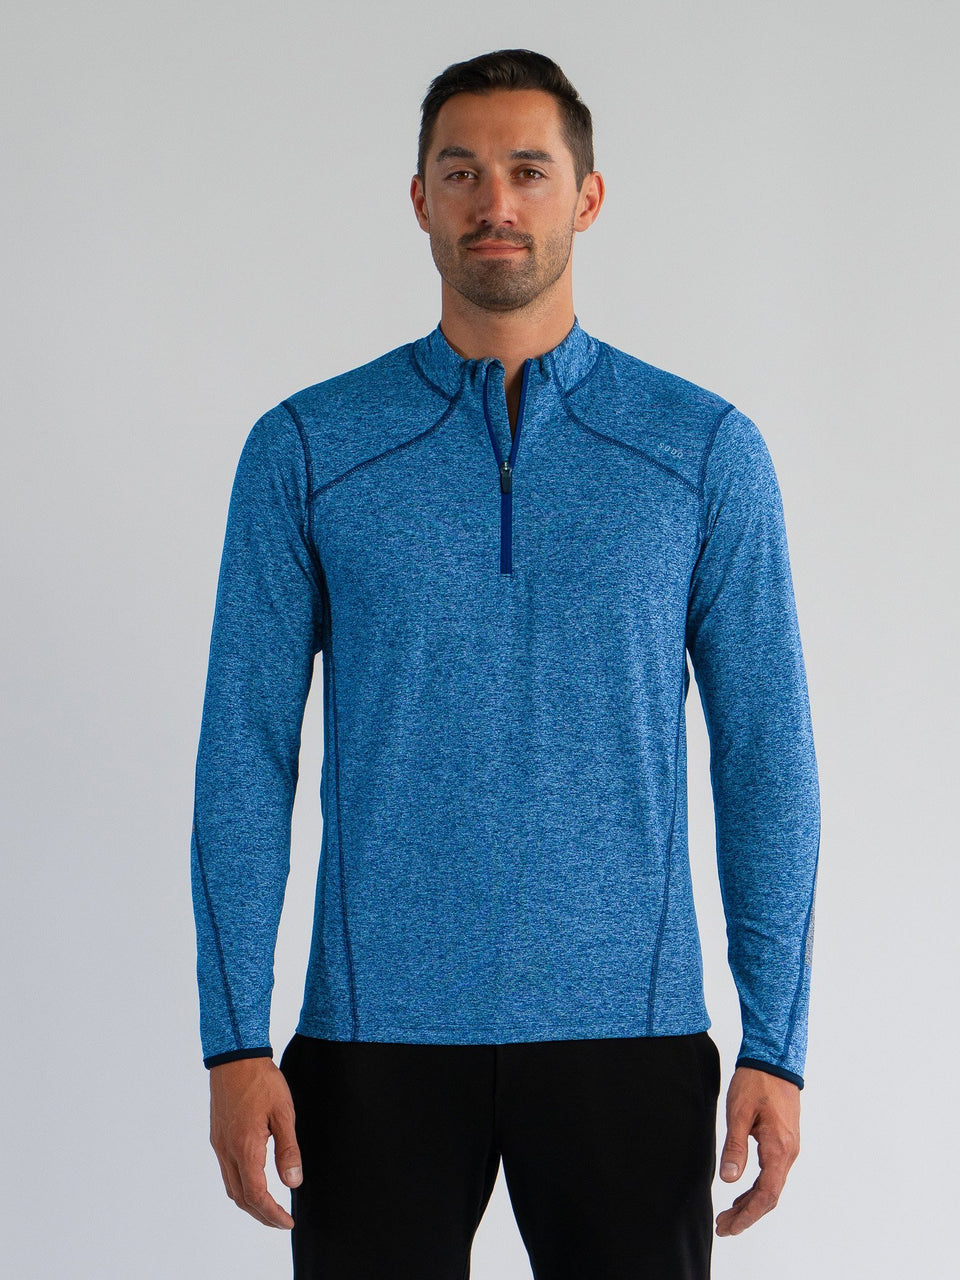 Elevate 1/4 Zip - Ocean Blue - XXL - SODO Apparel - Limited Inventory